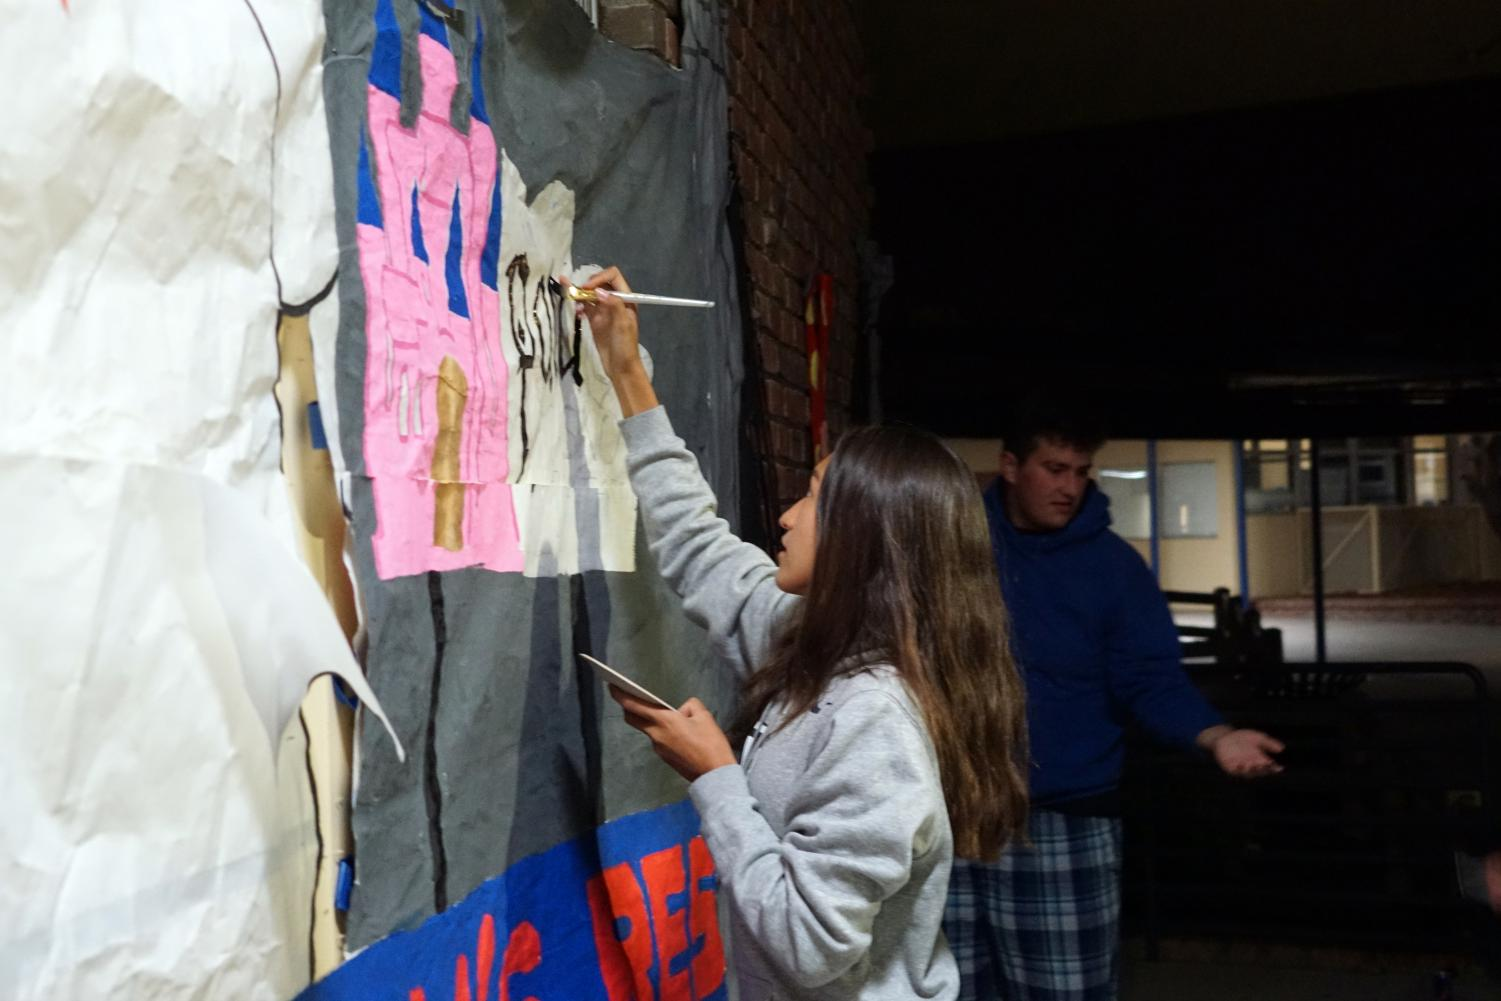 Junior Quinn Ruiz and decorating head puts some finishing touches on her homecoming decorations early Monday morning.